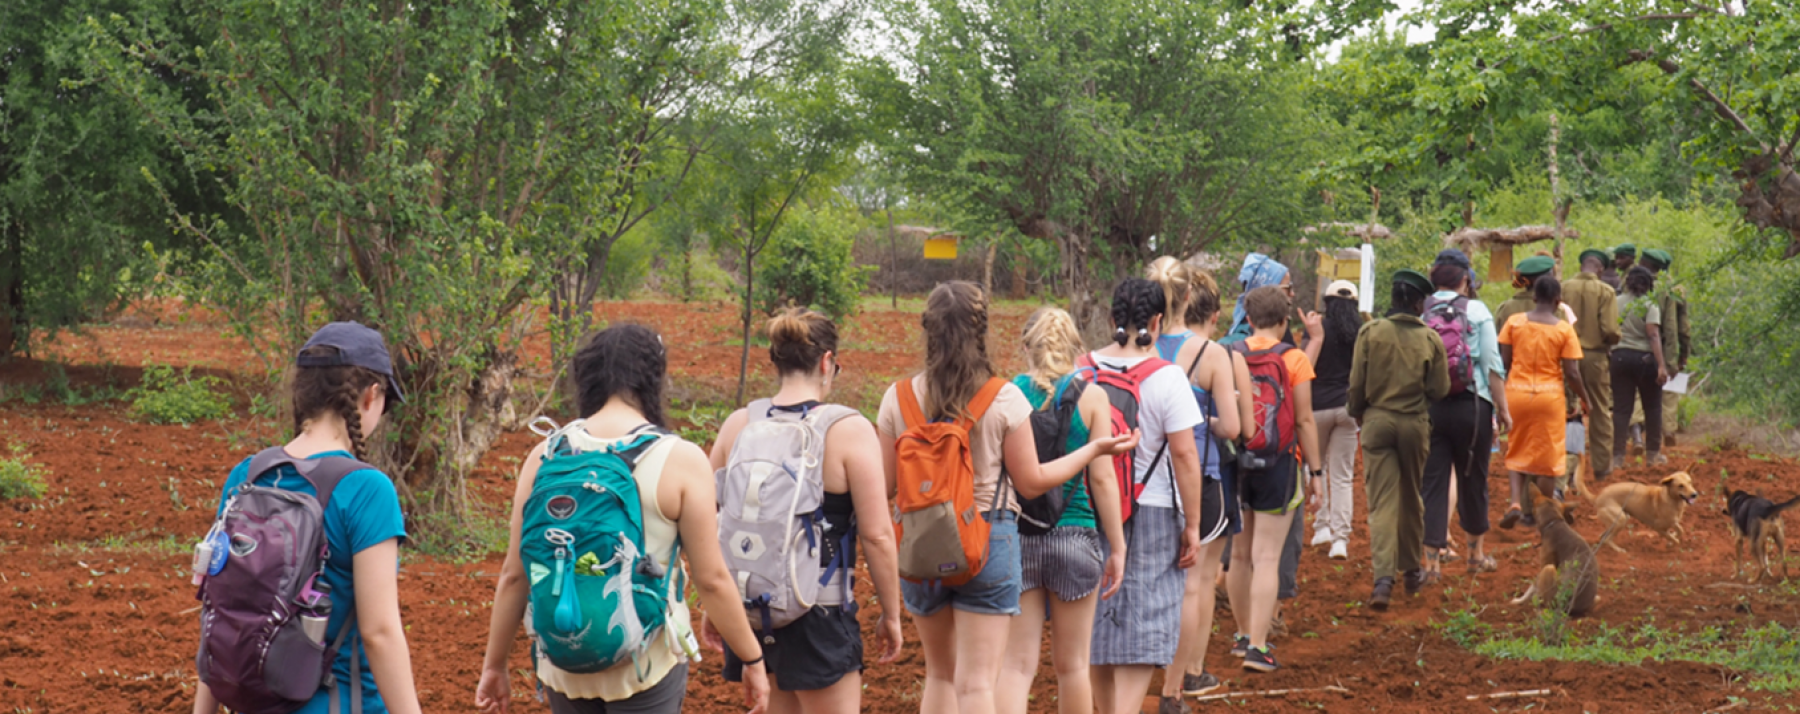 students walking in kenya